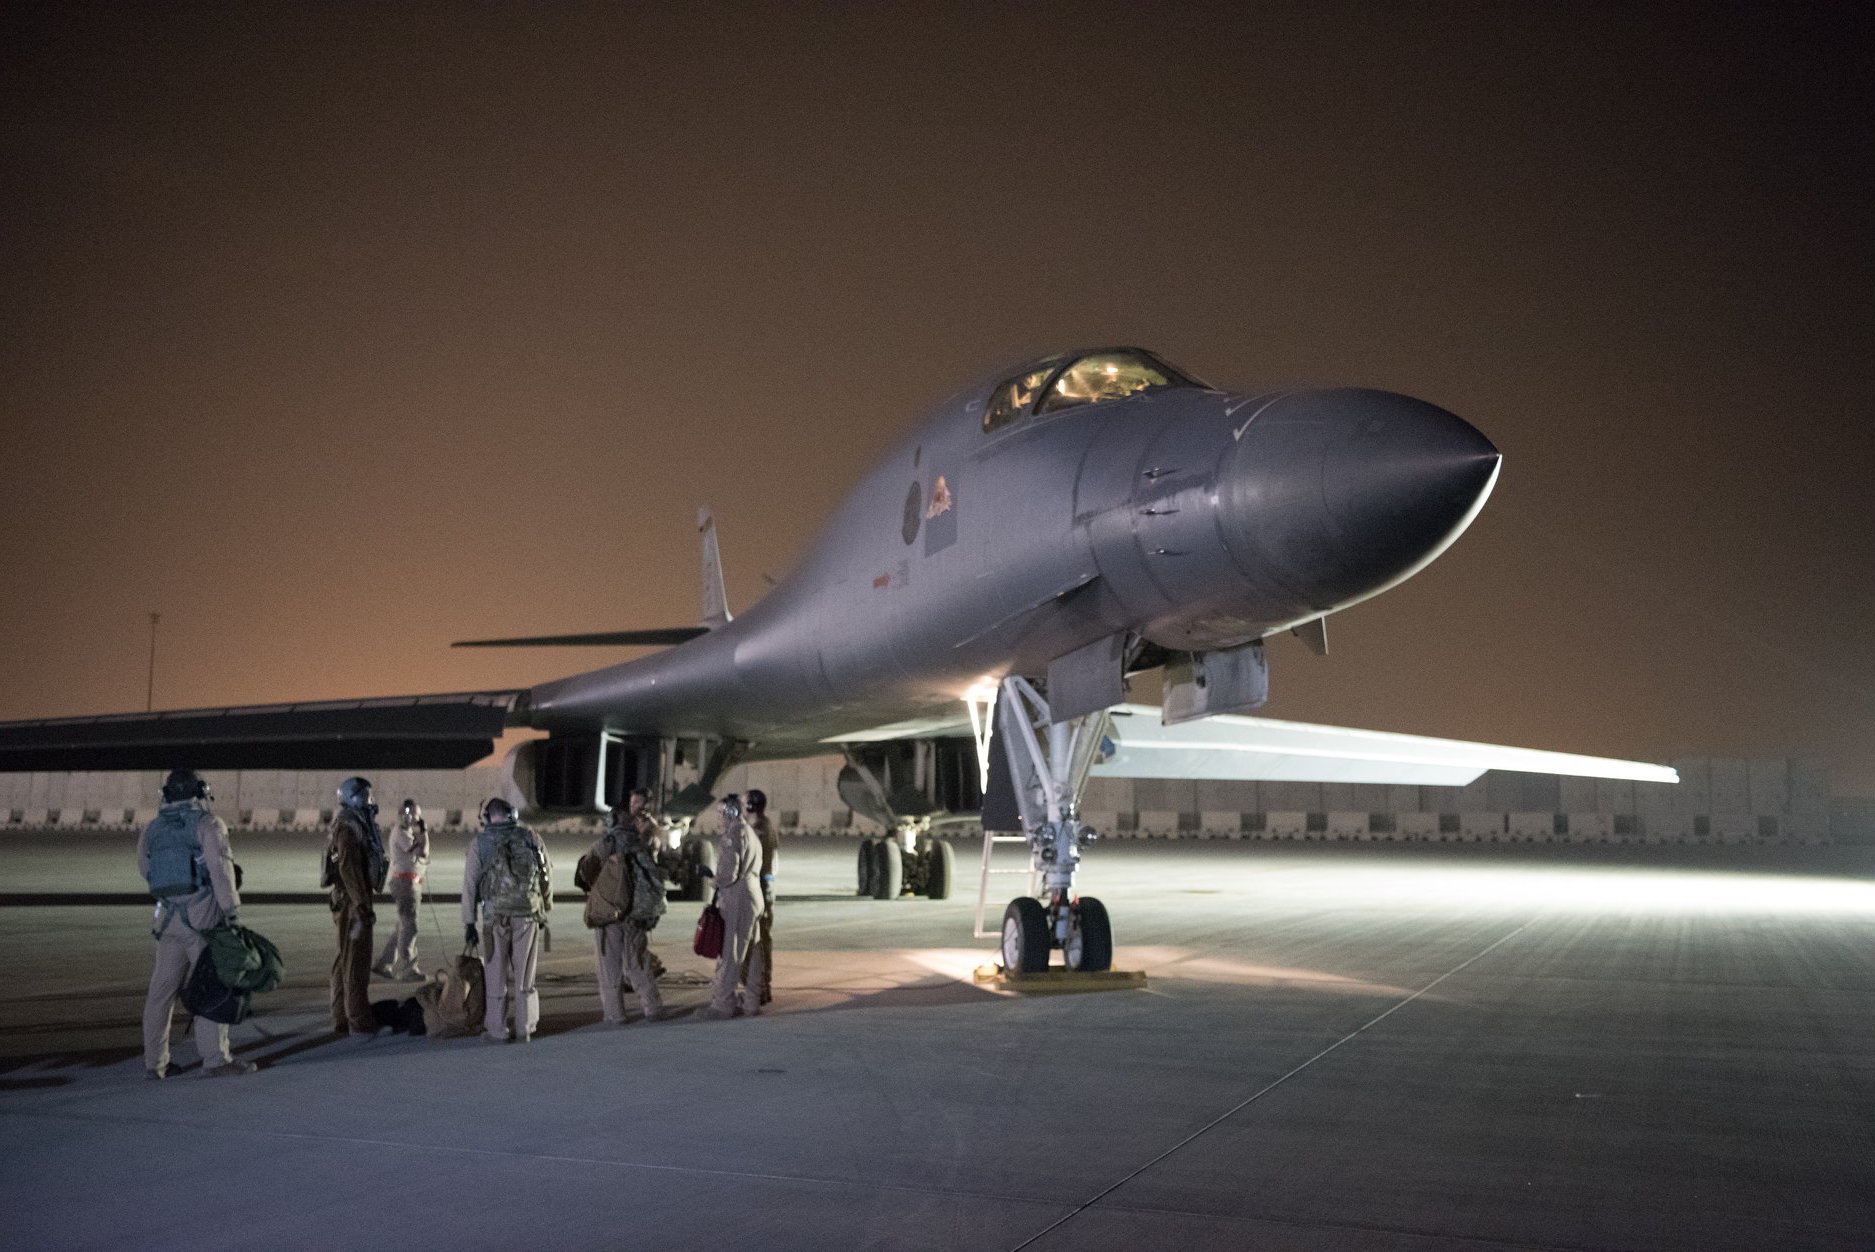 https://consortiumnews.com/wp-content/uploads/2019/05/B-1B_28th_Bomb_Wing_prepares_to_launch_a_strike_mission_from_Al_Udeid_AIr_Base_April_13_2018.jpg